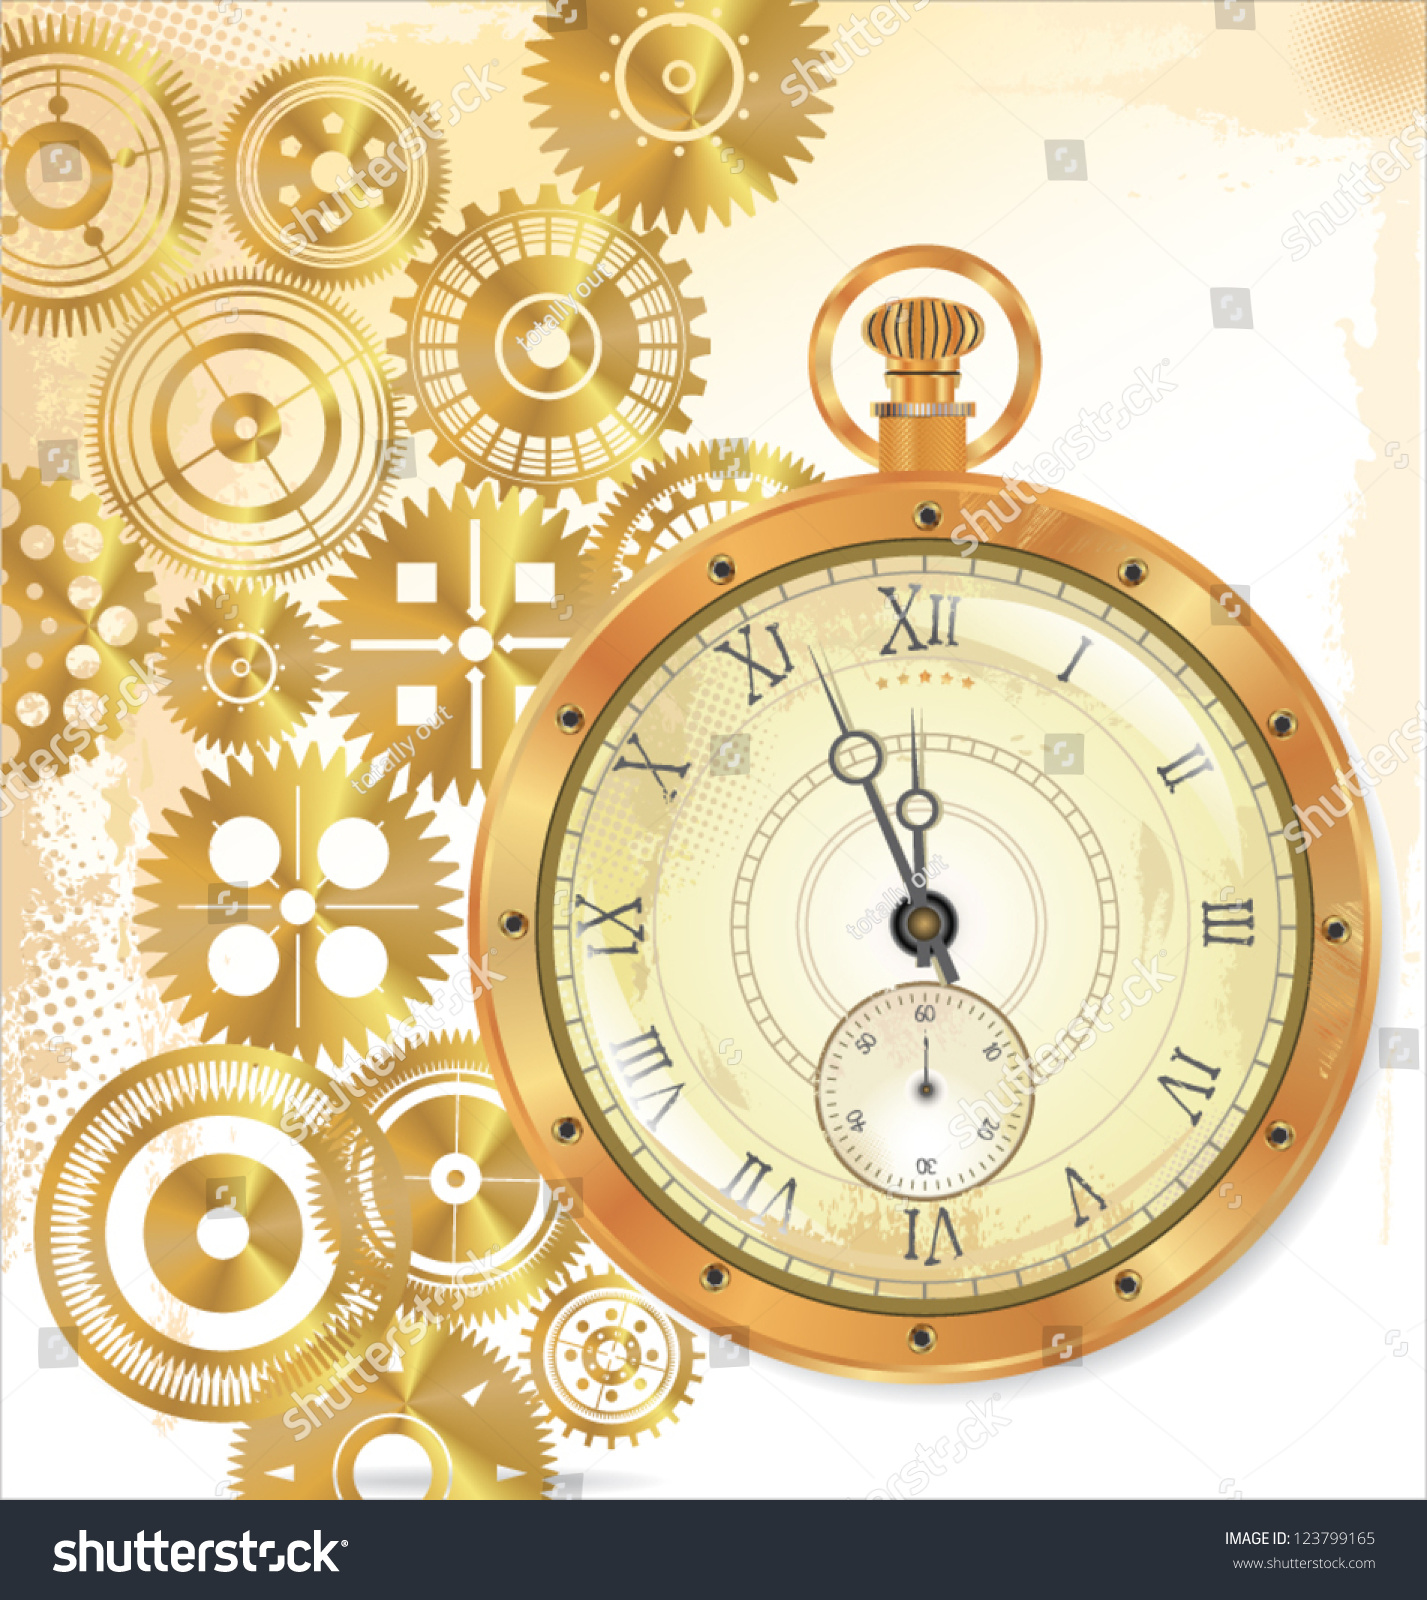 Old Watch Gears Motion Vector Illustration Stock Vector ...